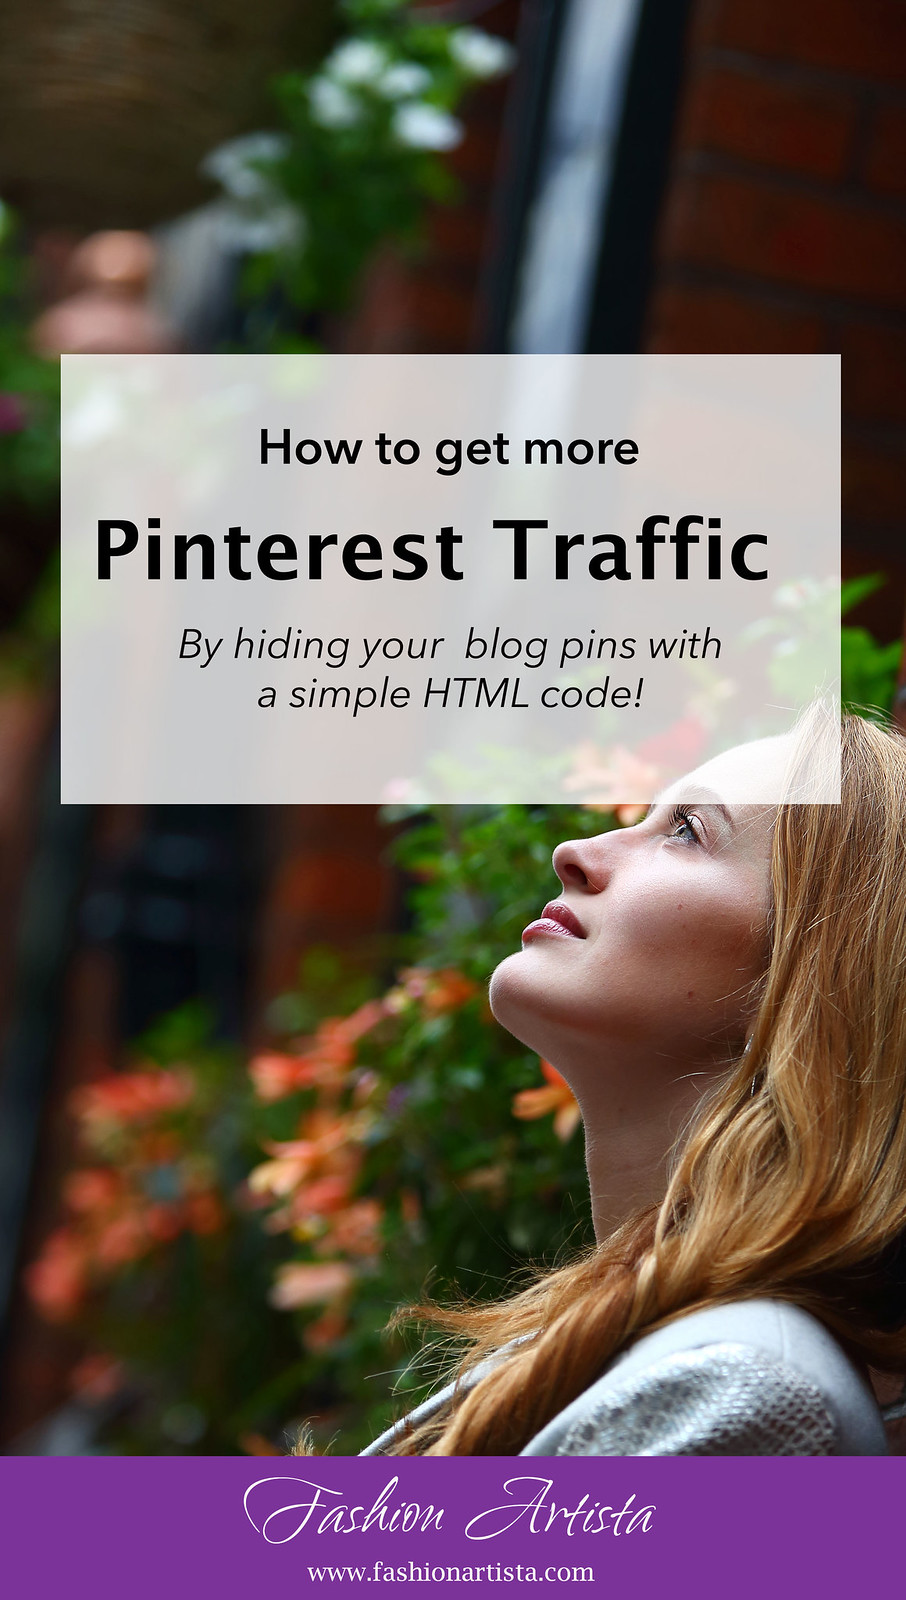 www.fashionartista.com How to hide pins on your blog post to make it look less spammy (while increasing the traffic to your blog) | blogging tips by Fashion Artista; subscribe for more hacks and get a free cheat sheet: http://bit.ly/2aSvceO